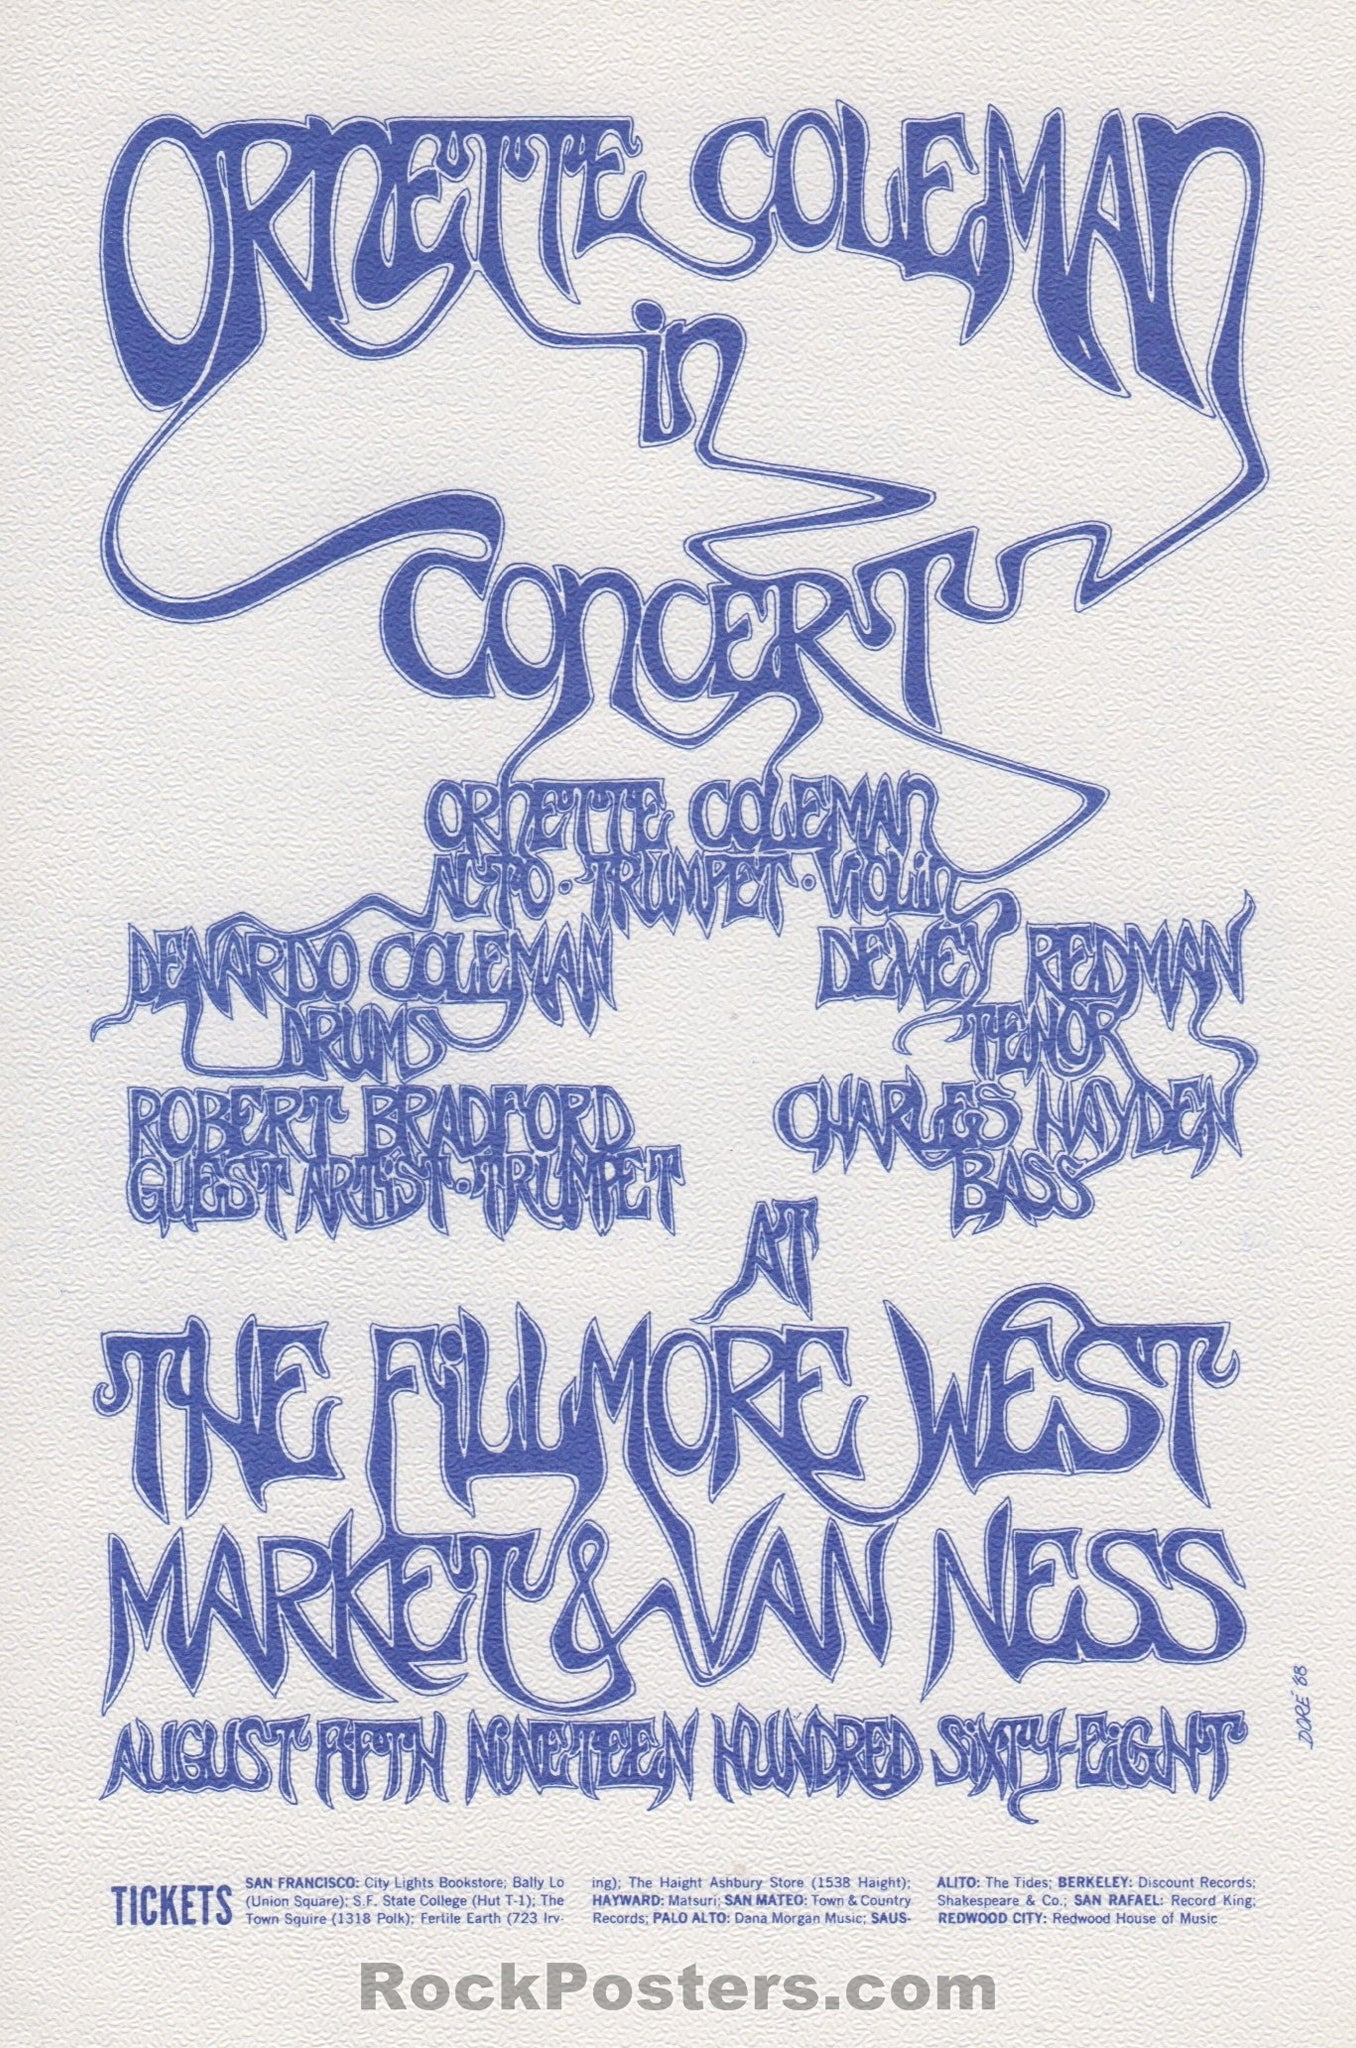 AOR2.080 - Ornette Coleman Handbill - Fillmore West - Condition - Mint - SF Rock Posters - EST 1991. San Francisco, CA